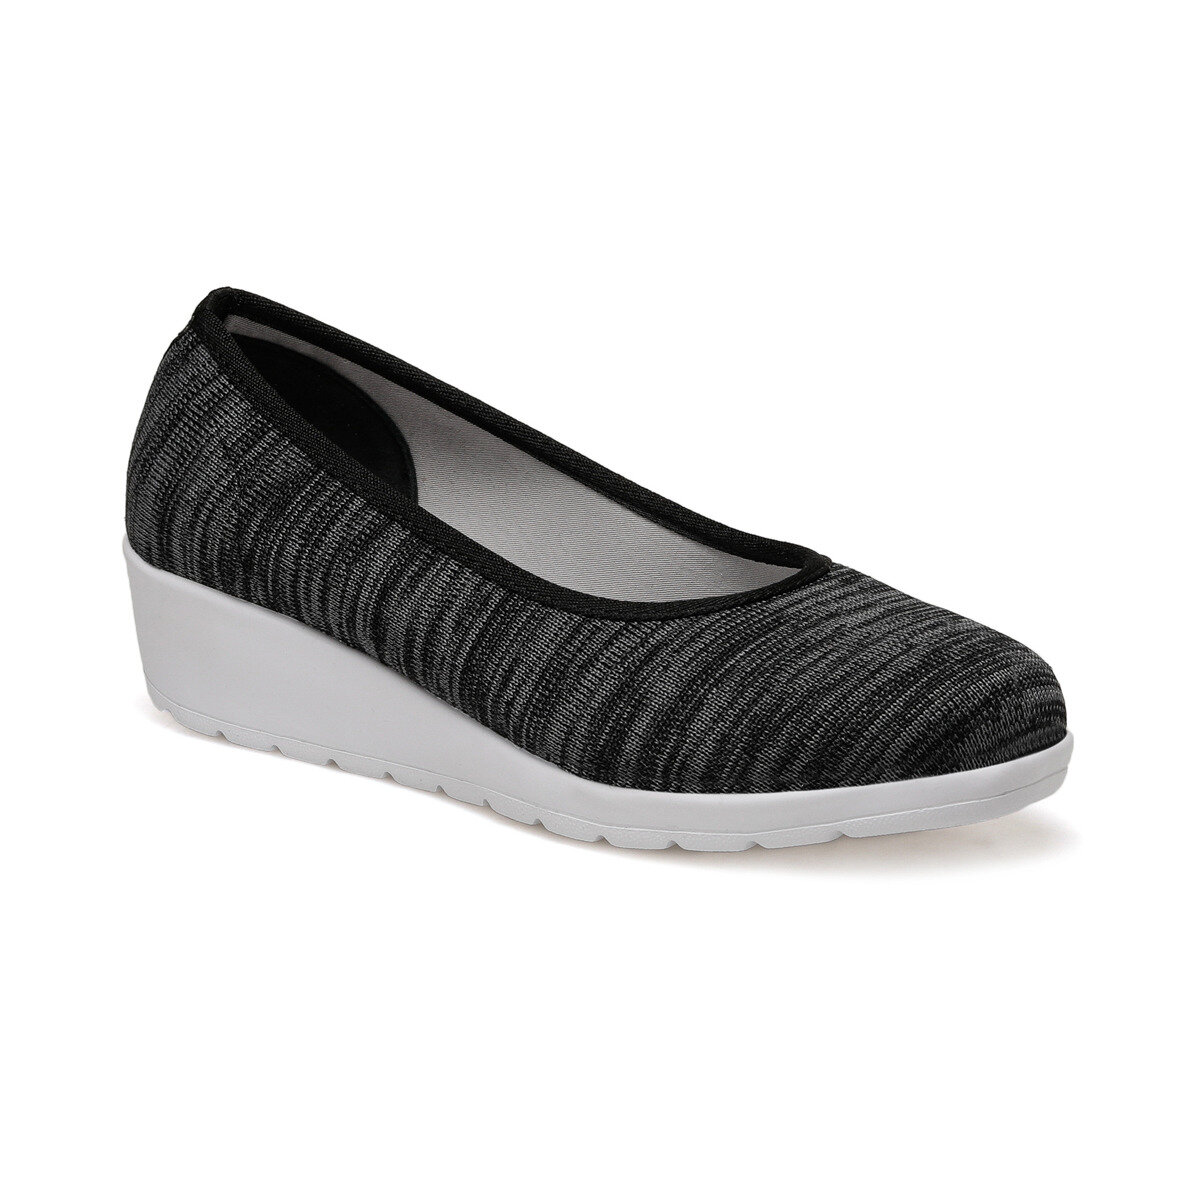 FLO 91. 150713.Z Black Women Shoes Polaris